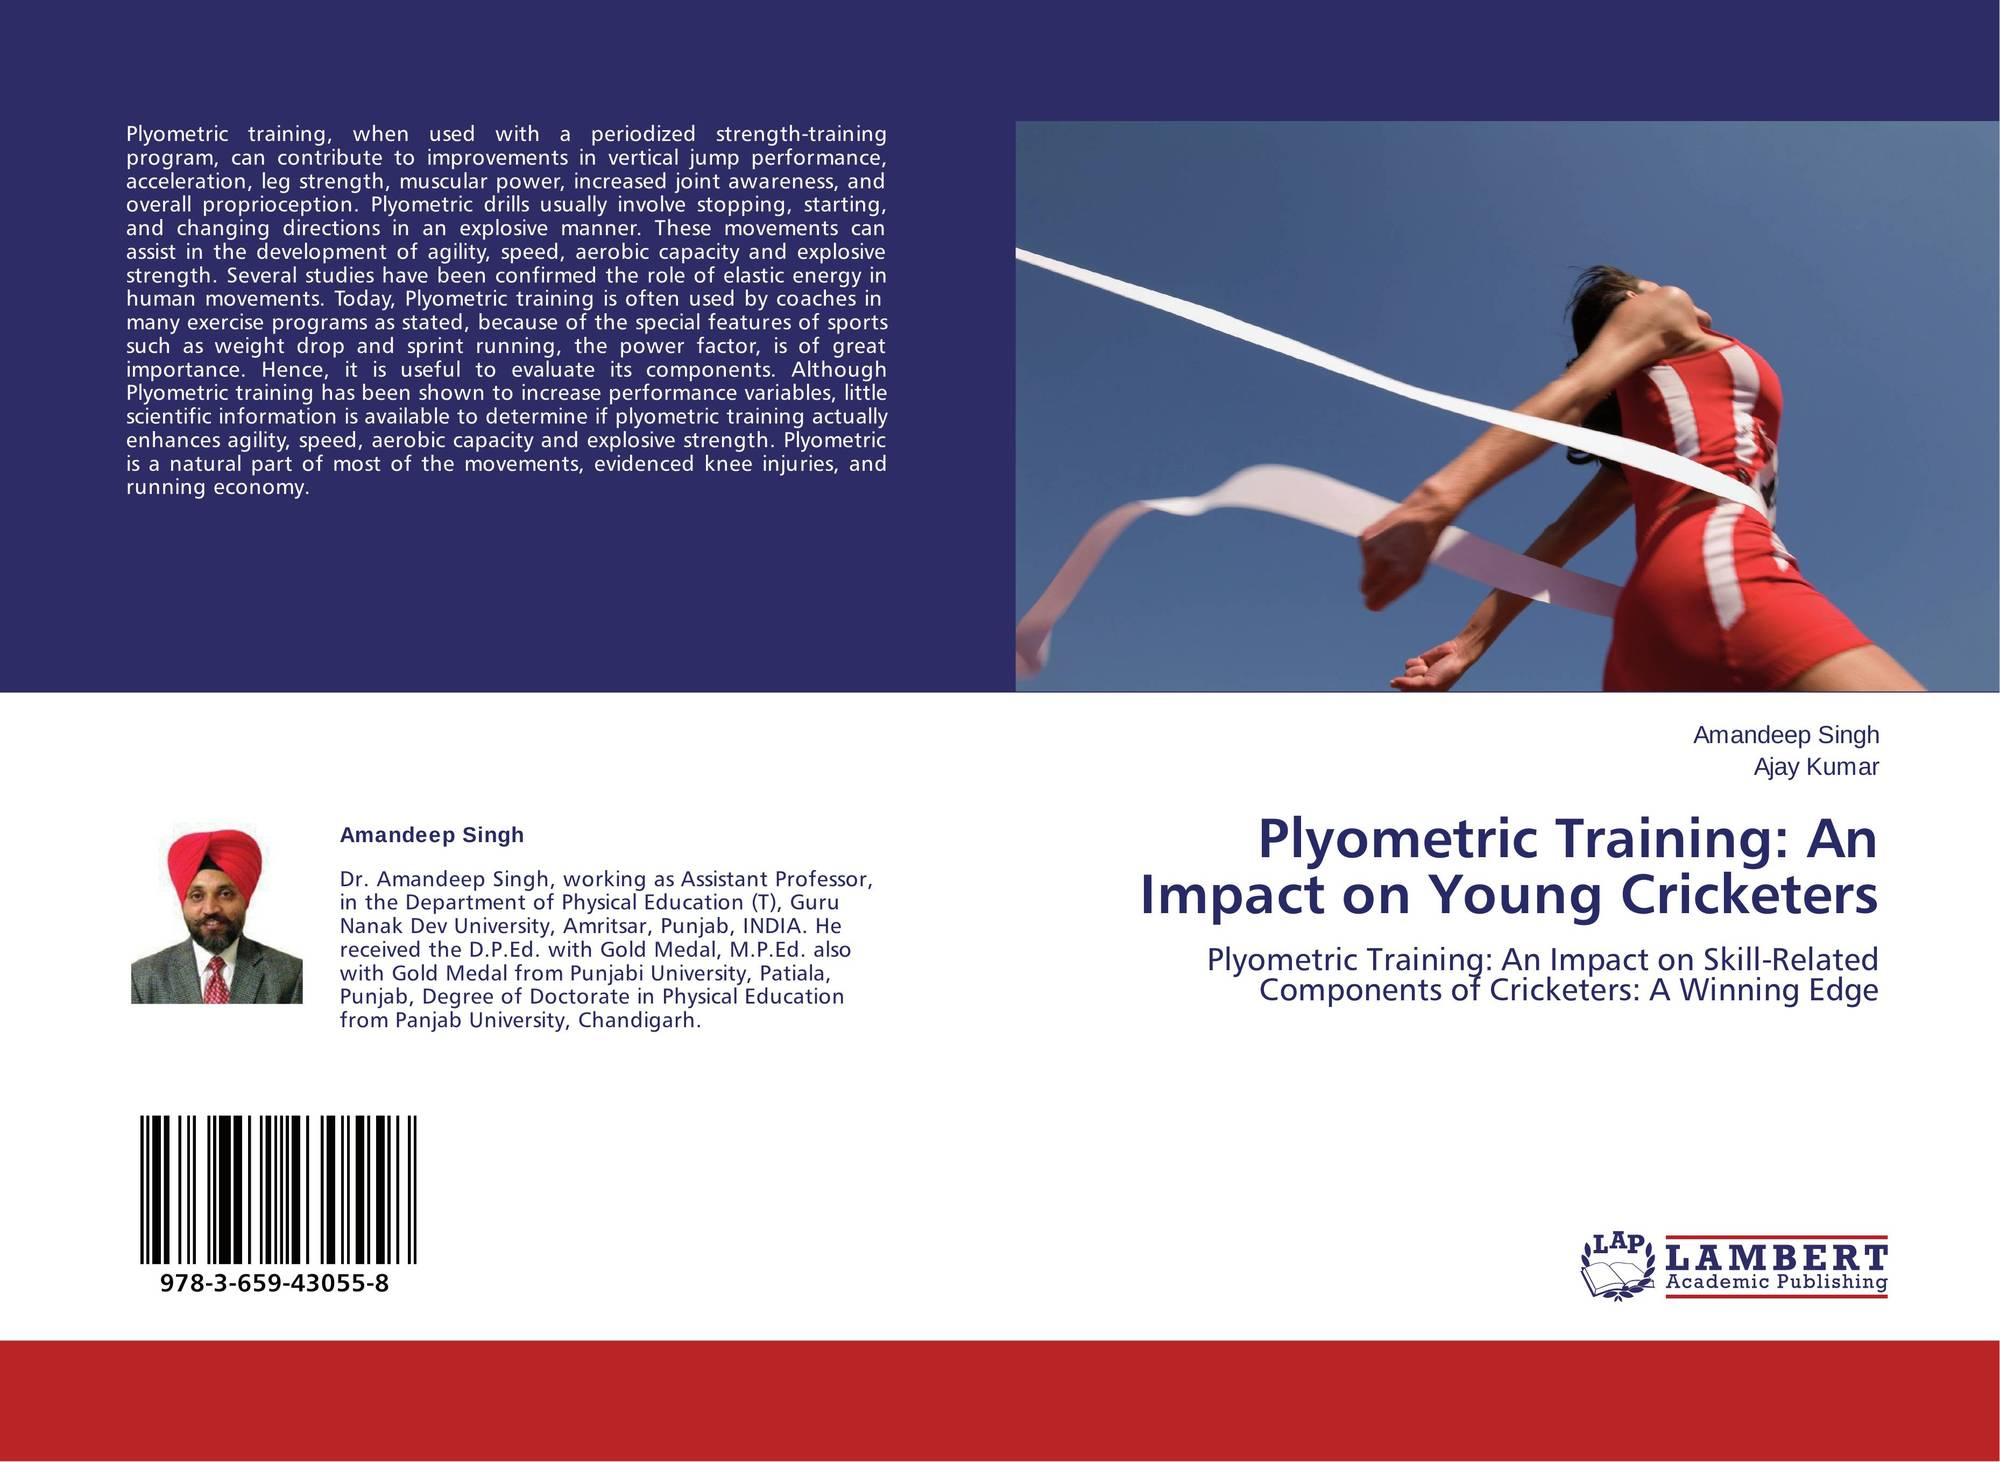 the effect of plyometric training on athletic performance essay Plyometric training effects on athletic performance in youth soccer athletes: a systematic review j strength cond res 29(8): 2351–2360, 2015—the purpose of this systematic review was to critically analyze the literature to determine the effectiveness of plyometric training on athletic performance in youth soccer athletes.